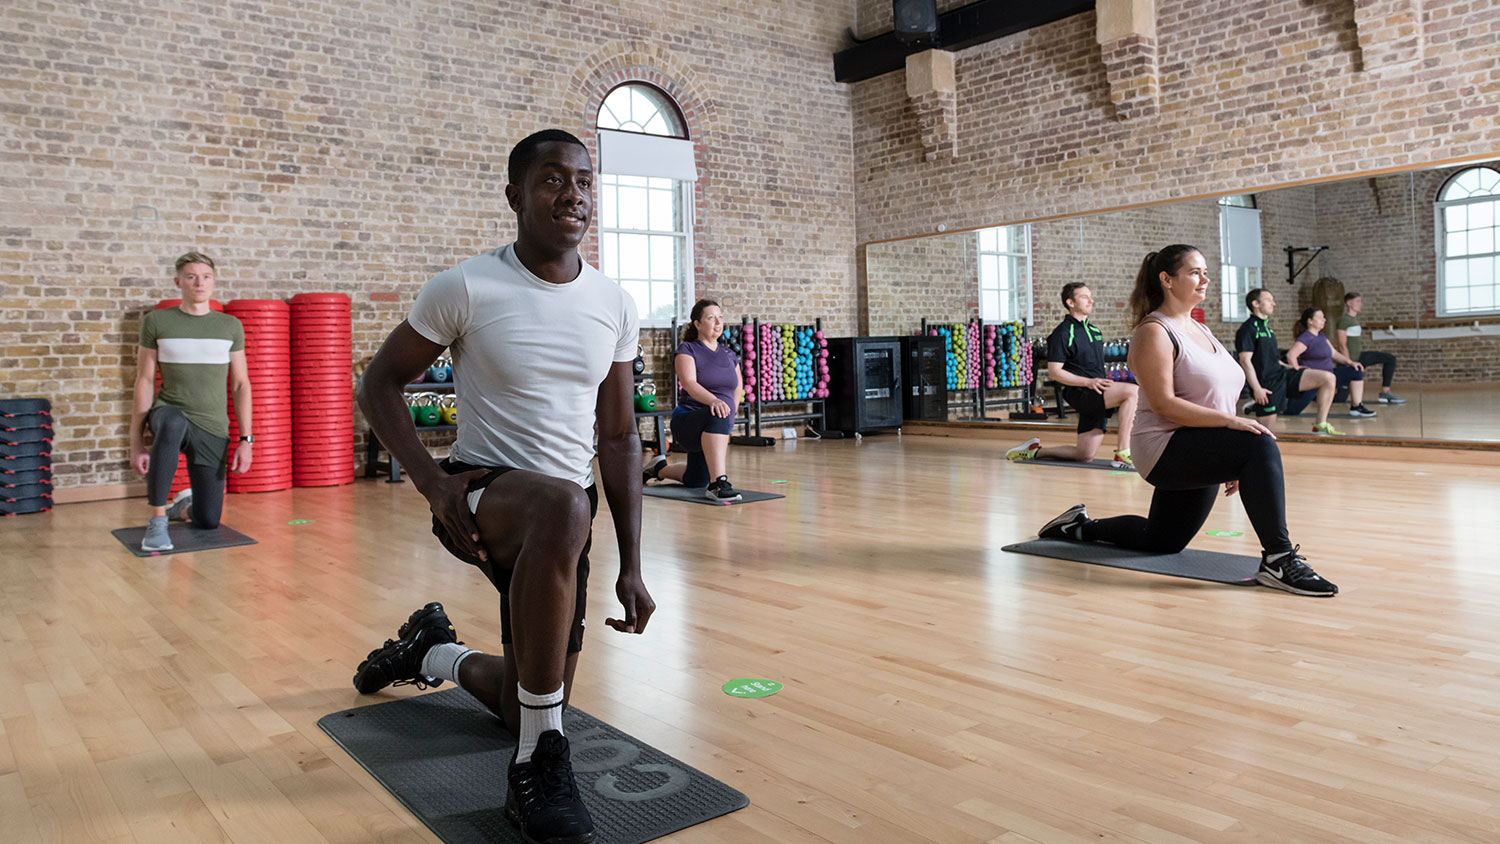 Fewer people allowed in gyms classes